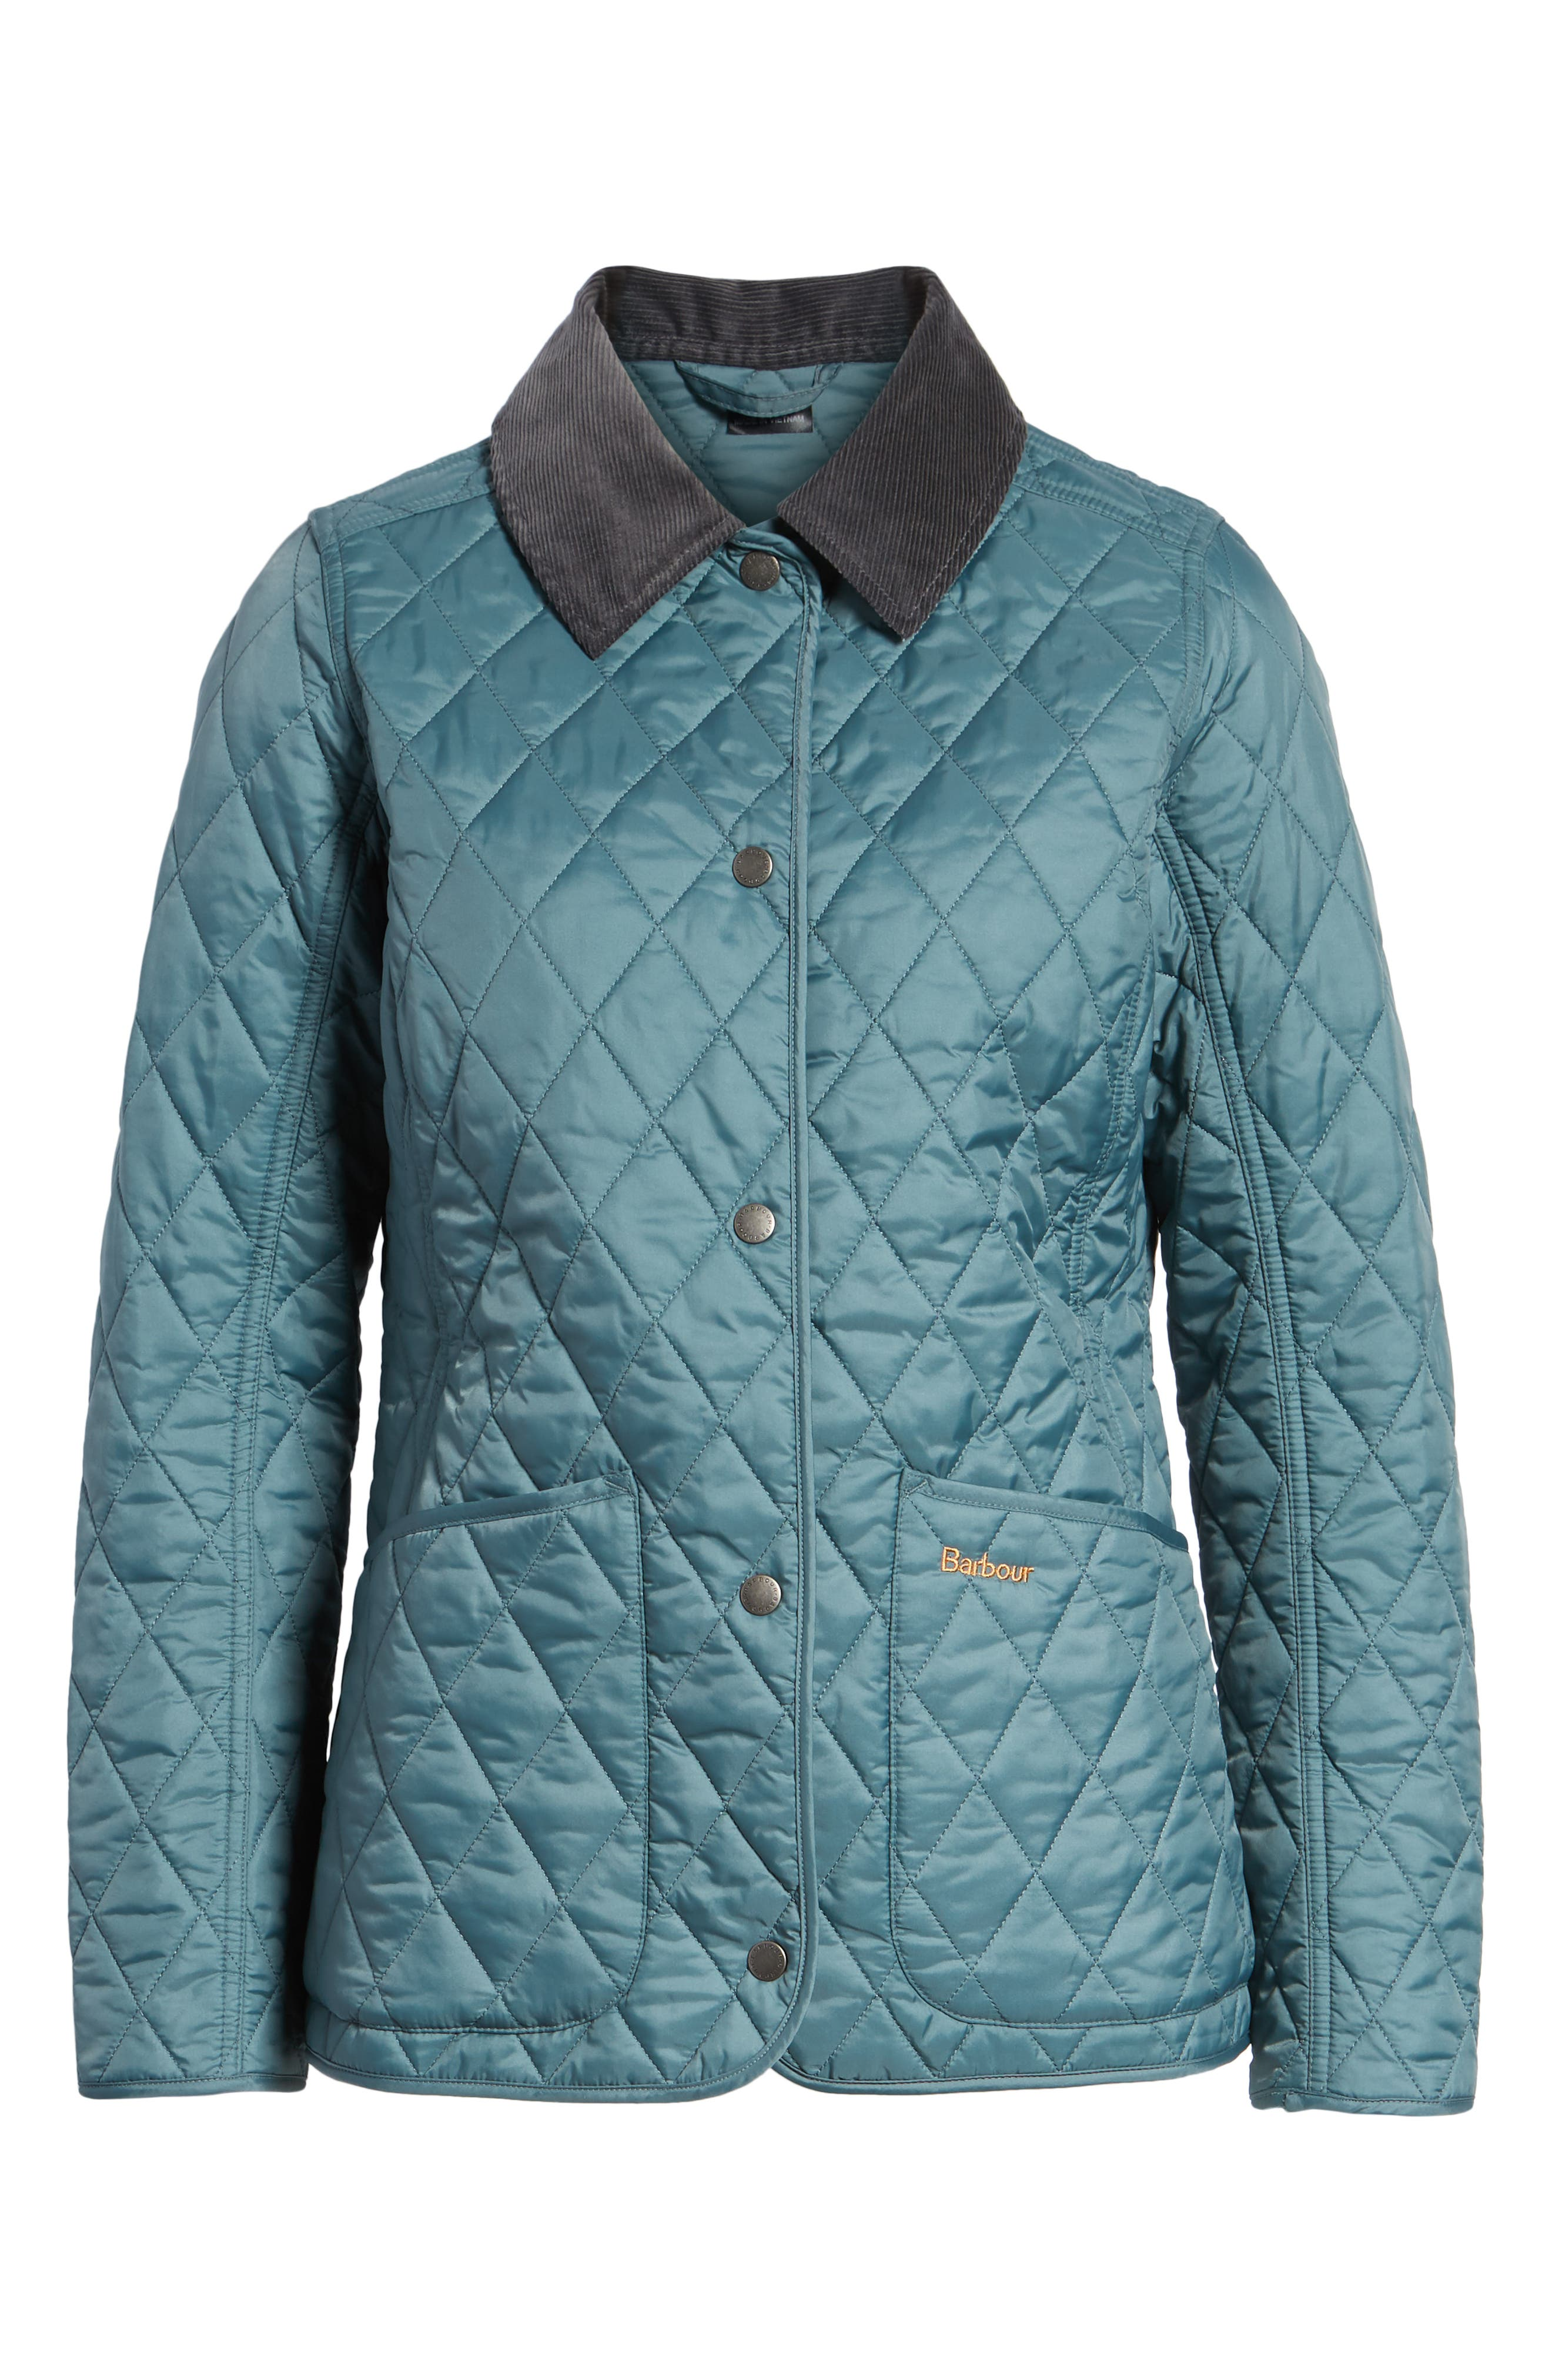 Annandale Quilted Jacket,                             Alternate thumbnail 6, color,                             EUCALYPTUS